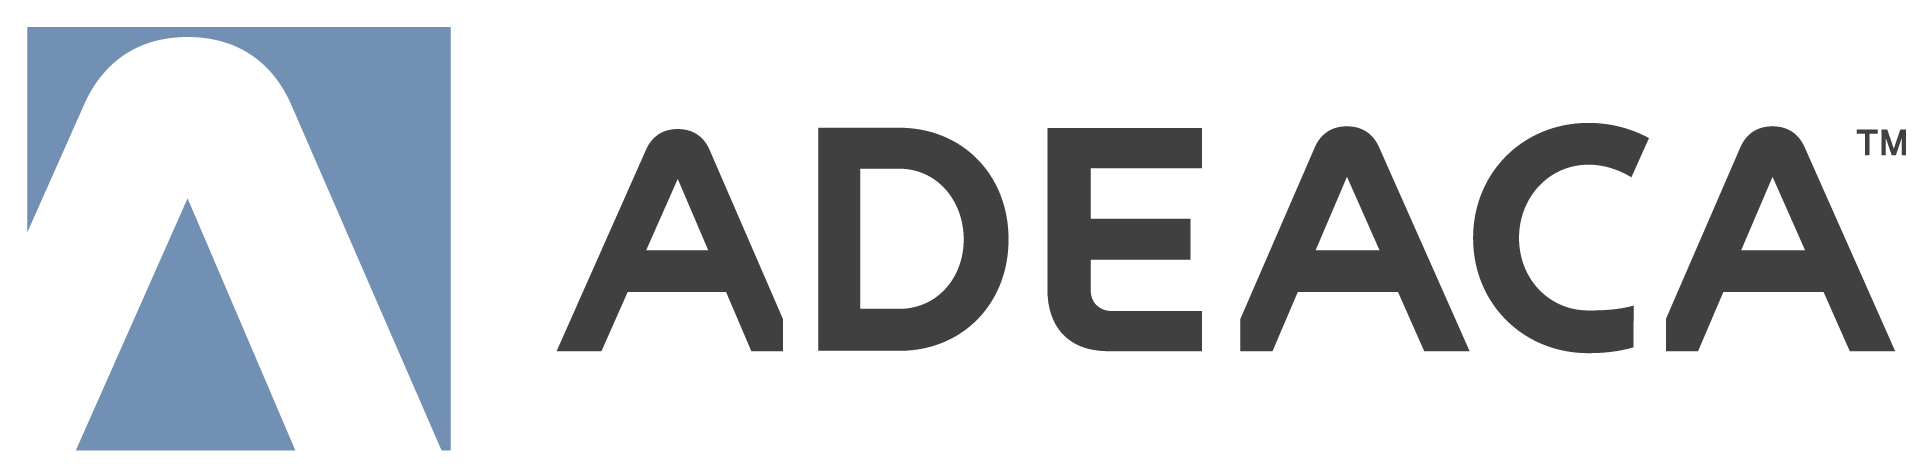 Adeaca Seeks Project Business Optimization Consultant Due to Demand for Project Business Automation